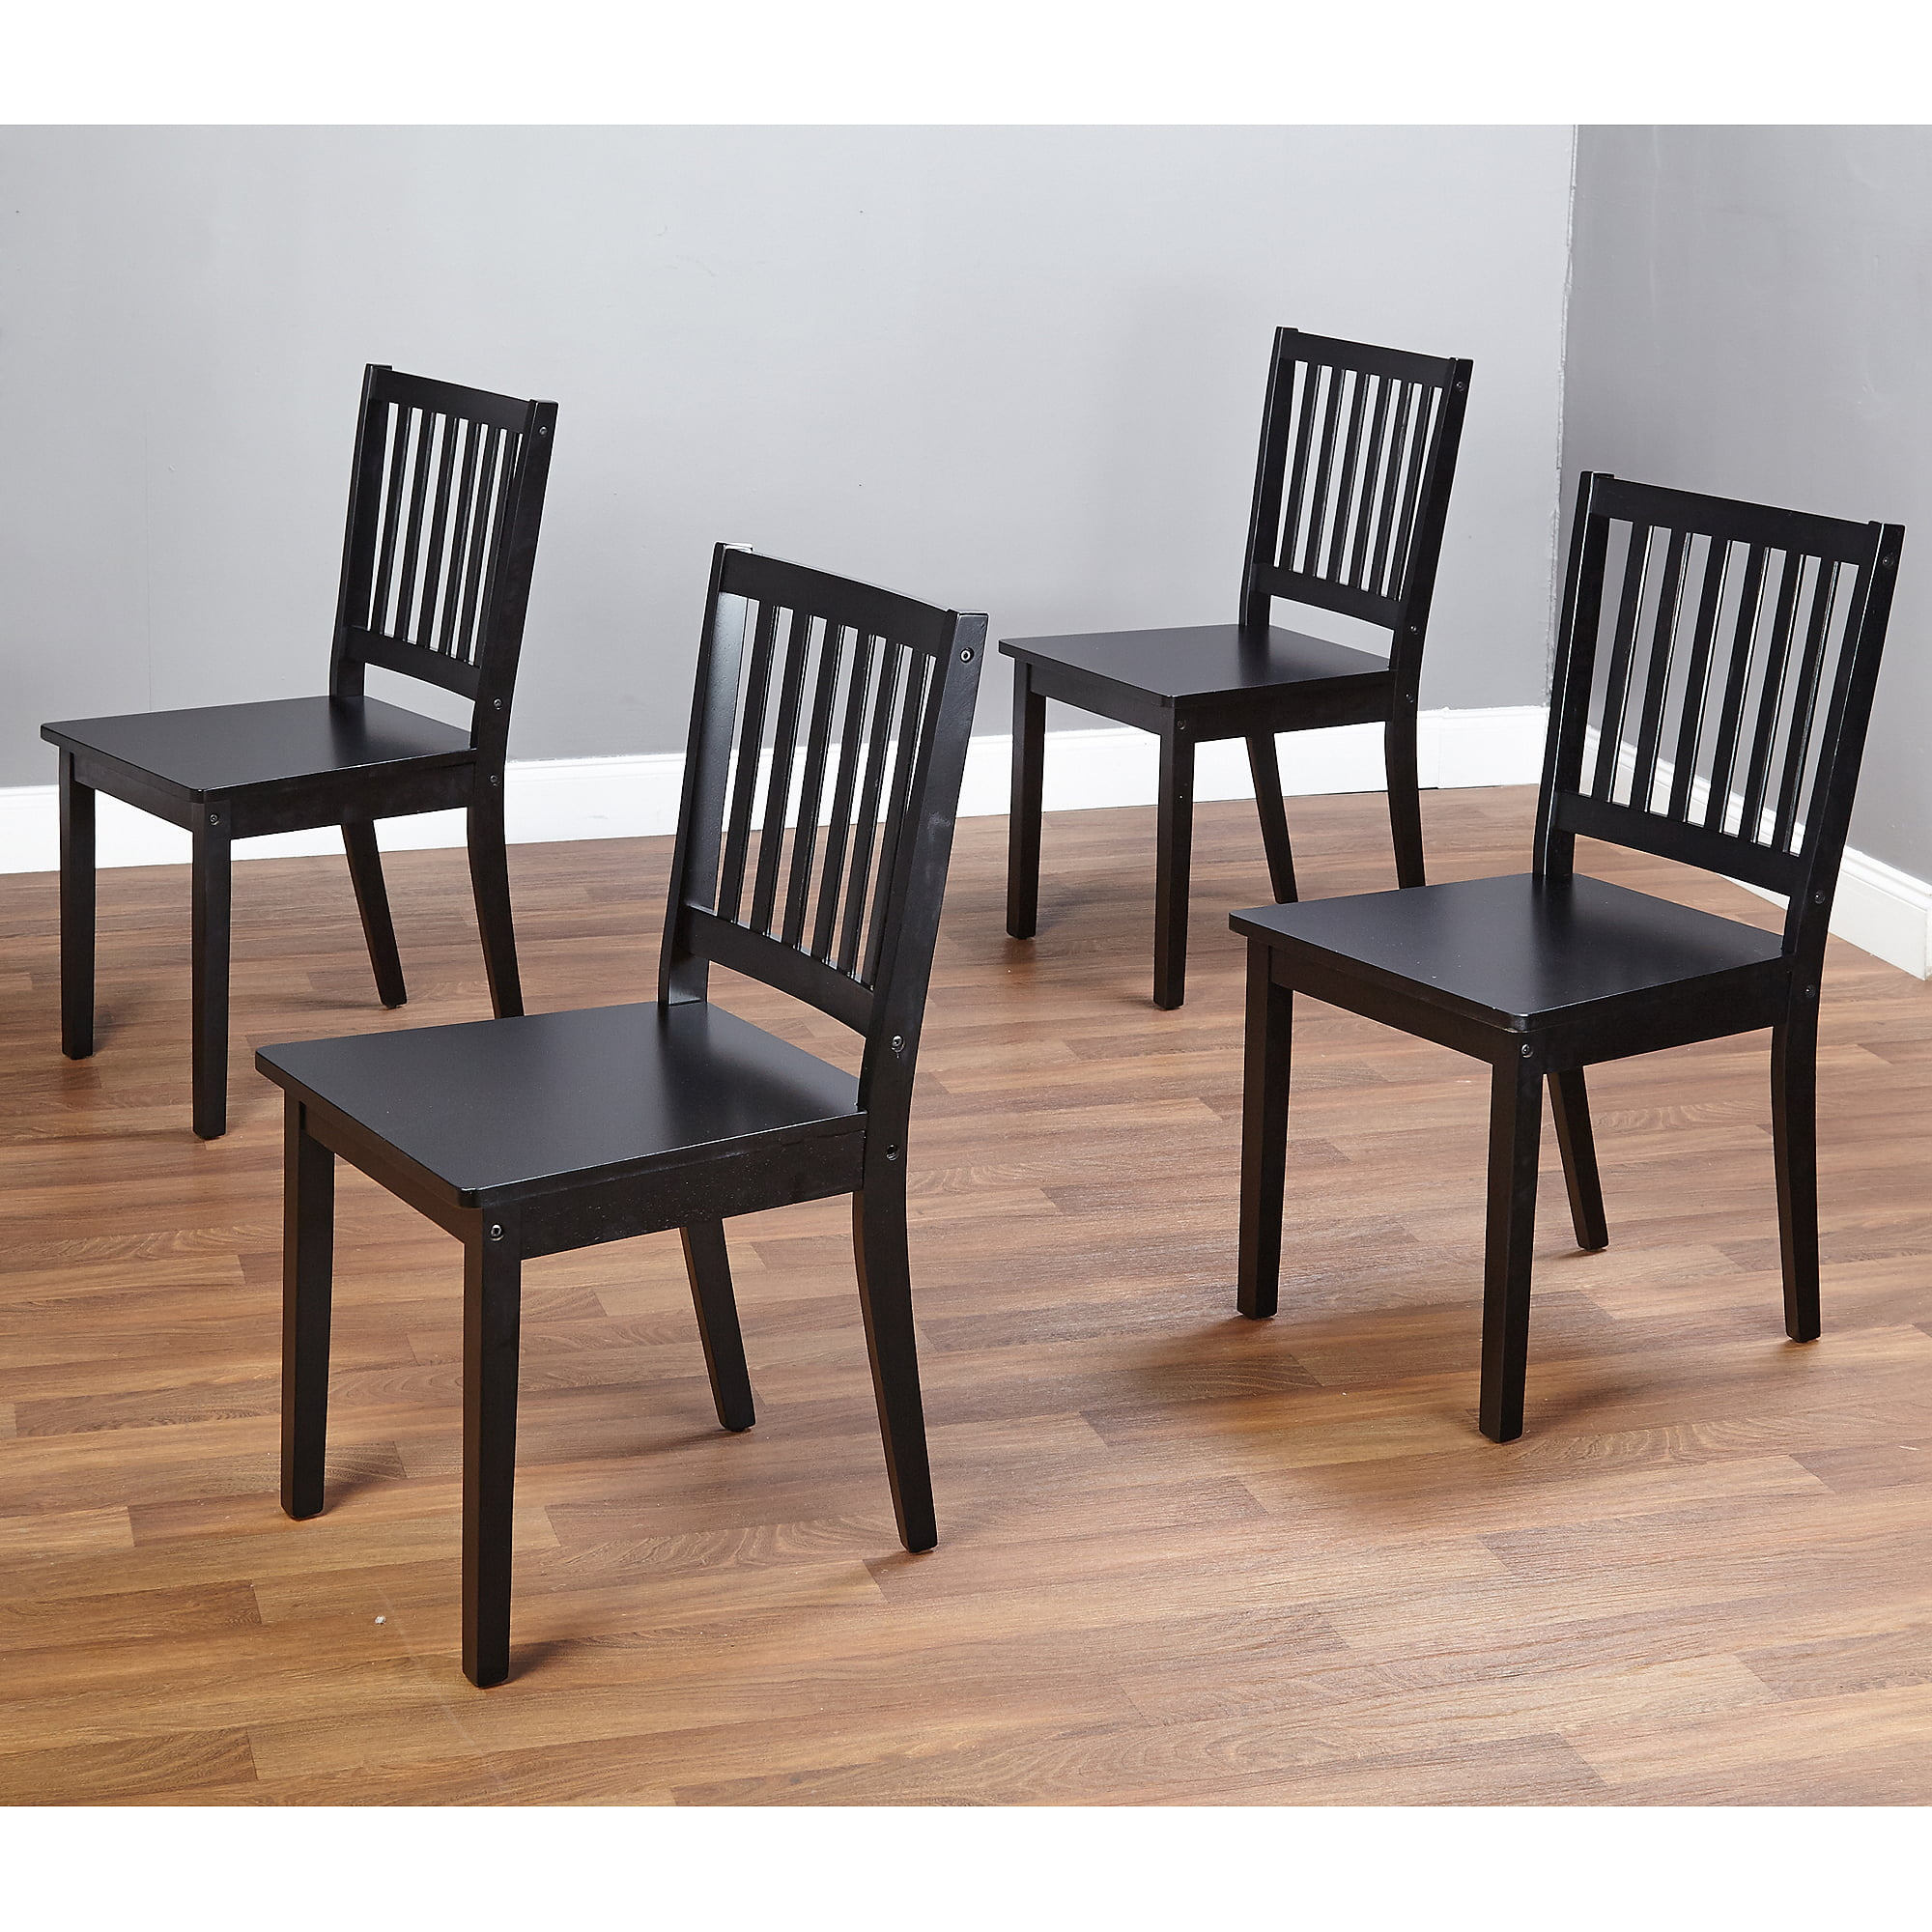 shaker dining chairs, set of 4, black - walmart